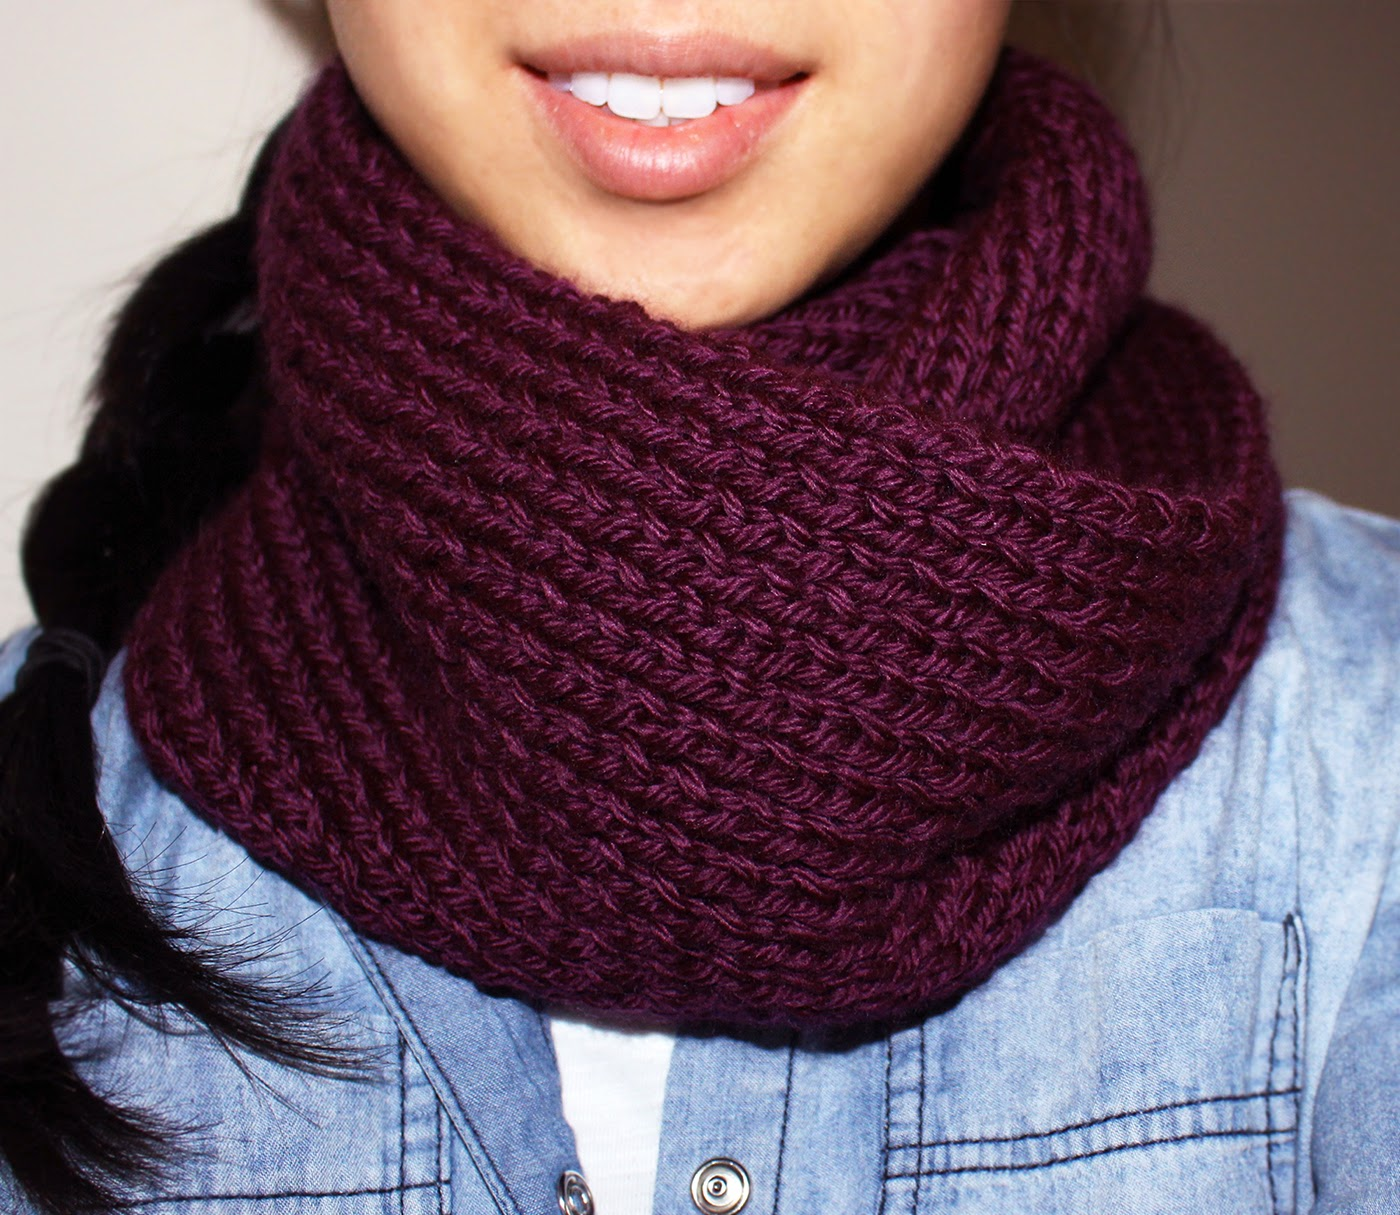 Knitting Scarf Patterns Beginners : Purllin: Acai Infinity Circle Scarf [free knitting pattern]